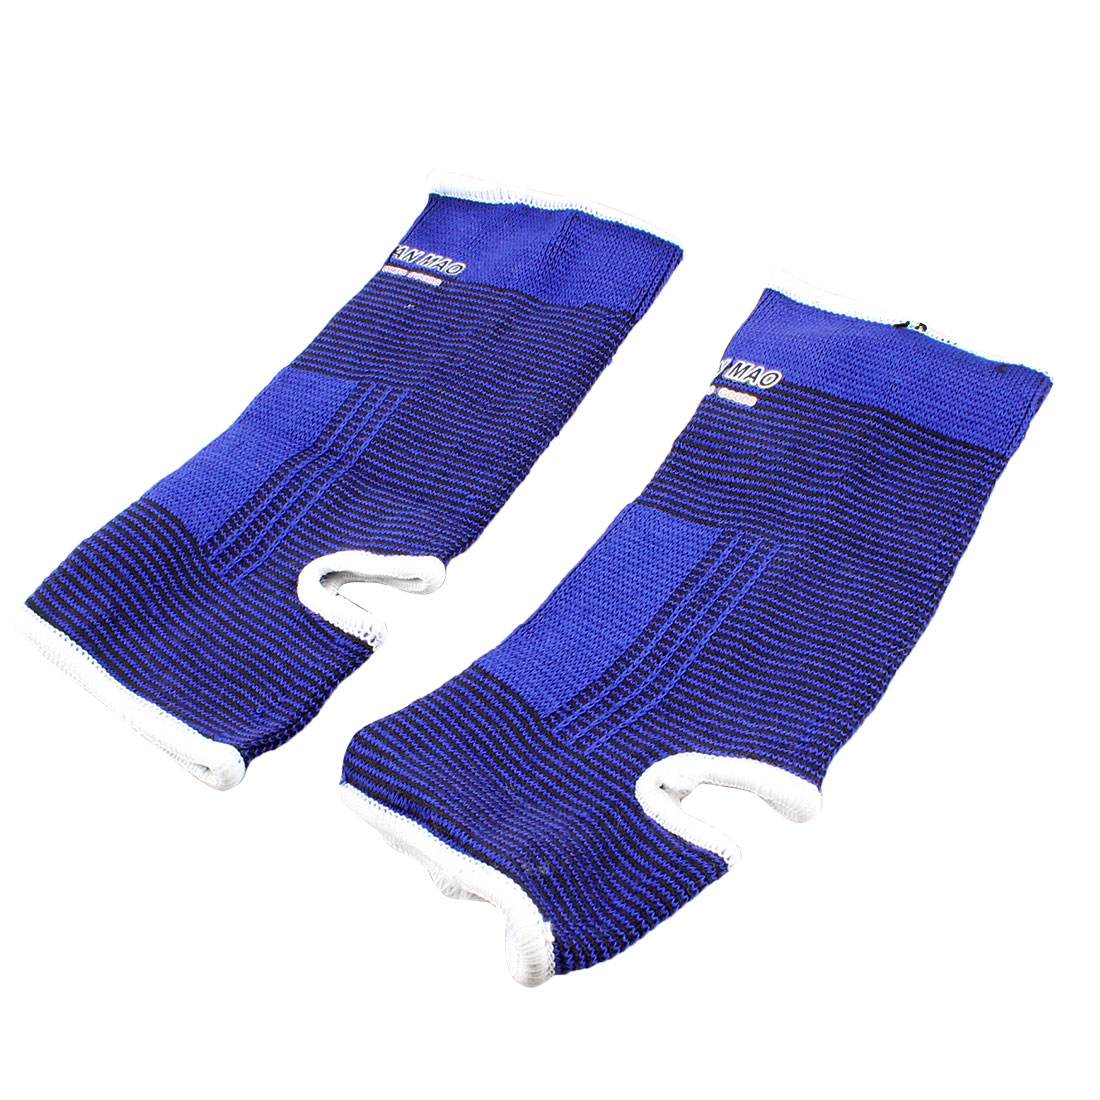 Pinstripes White Hem Ankle Support Sport Sleeve Brace Protectors Black Blue Pair